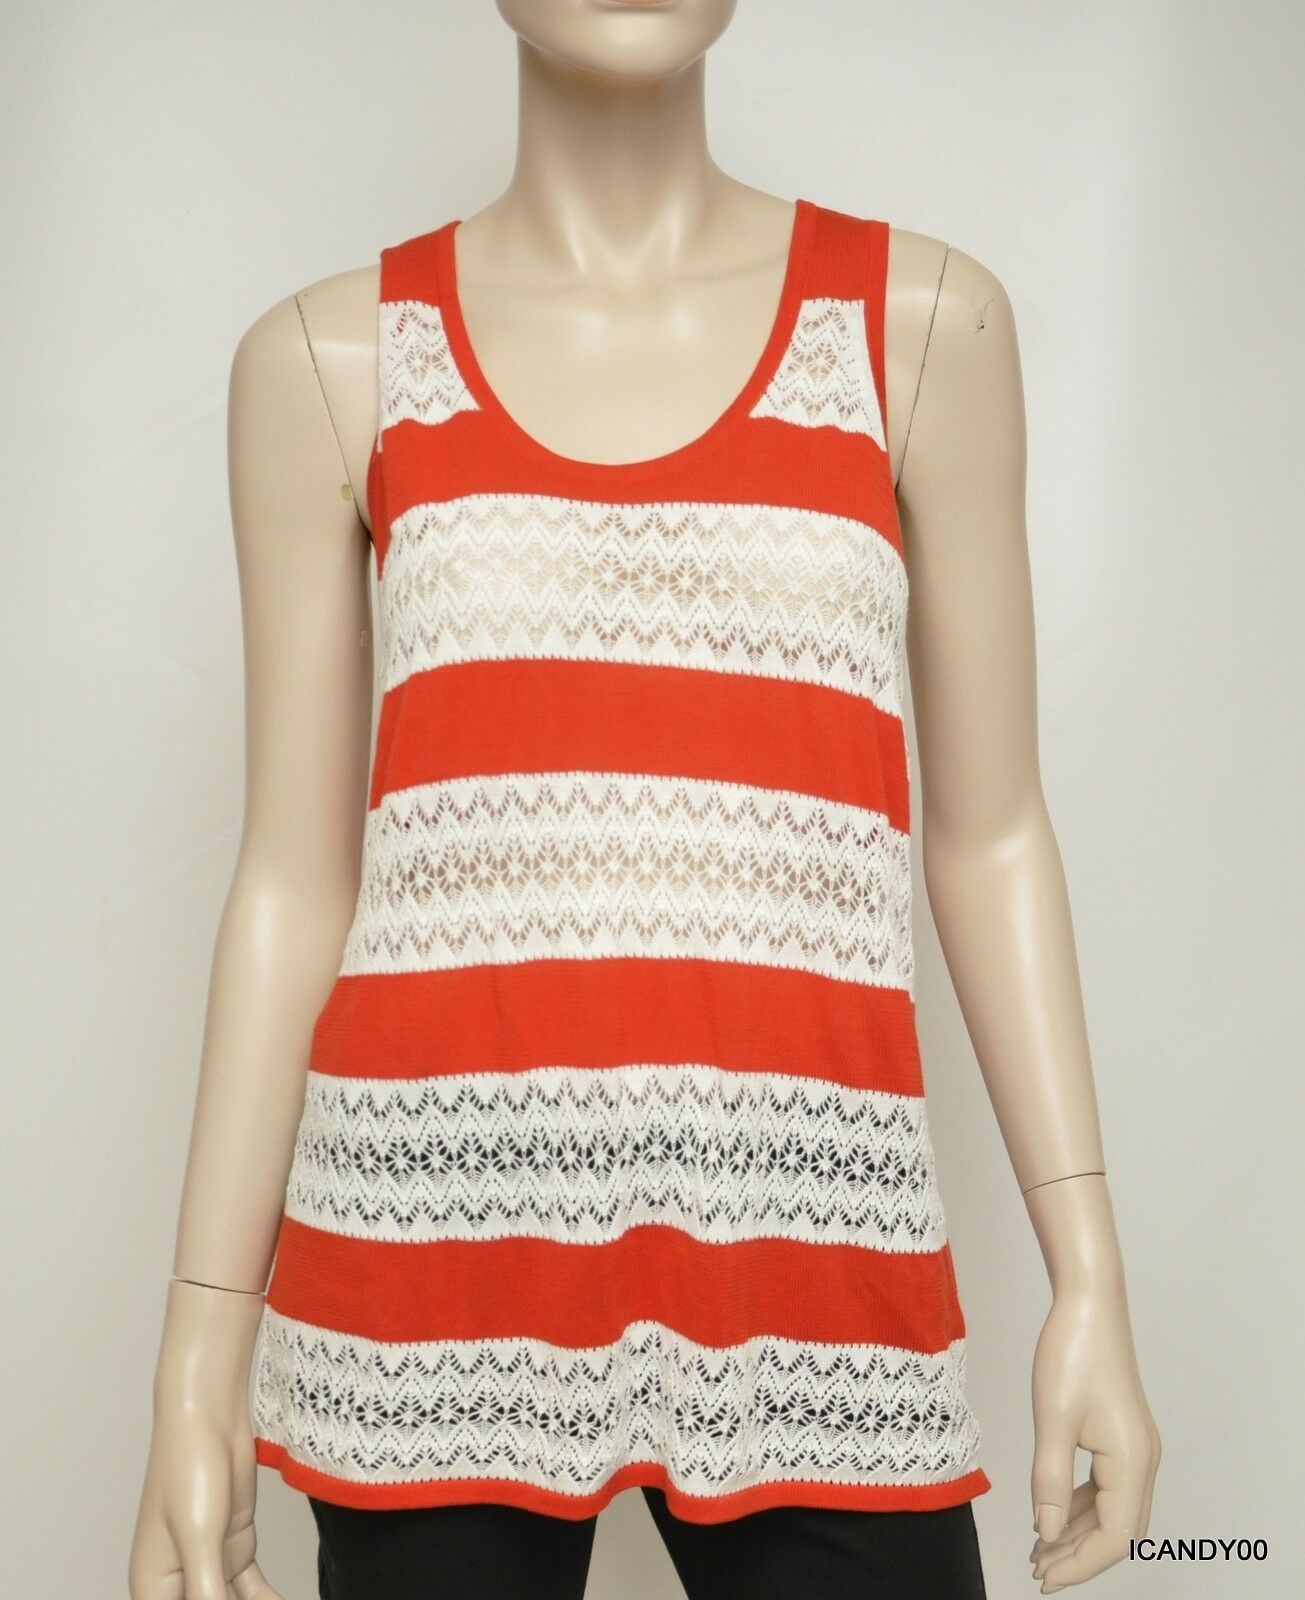 Nwt  L.A.M.B. Striped Cotton Pointelle Knit Tank Top Racerback rot Weiß M